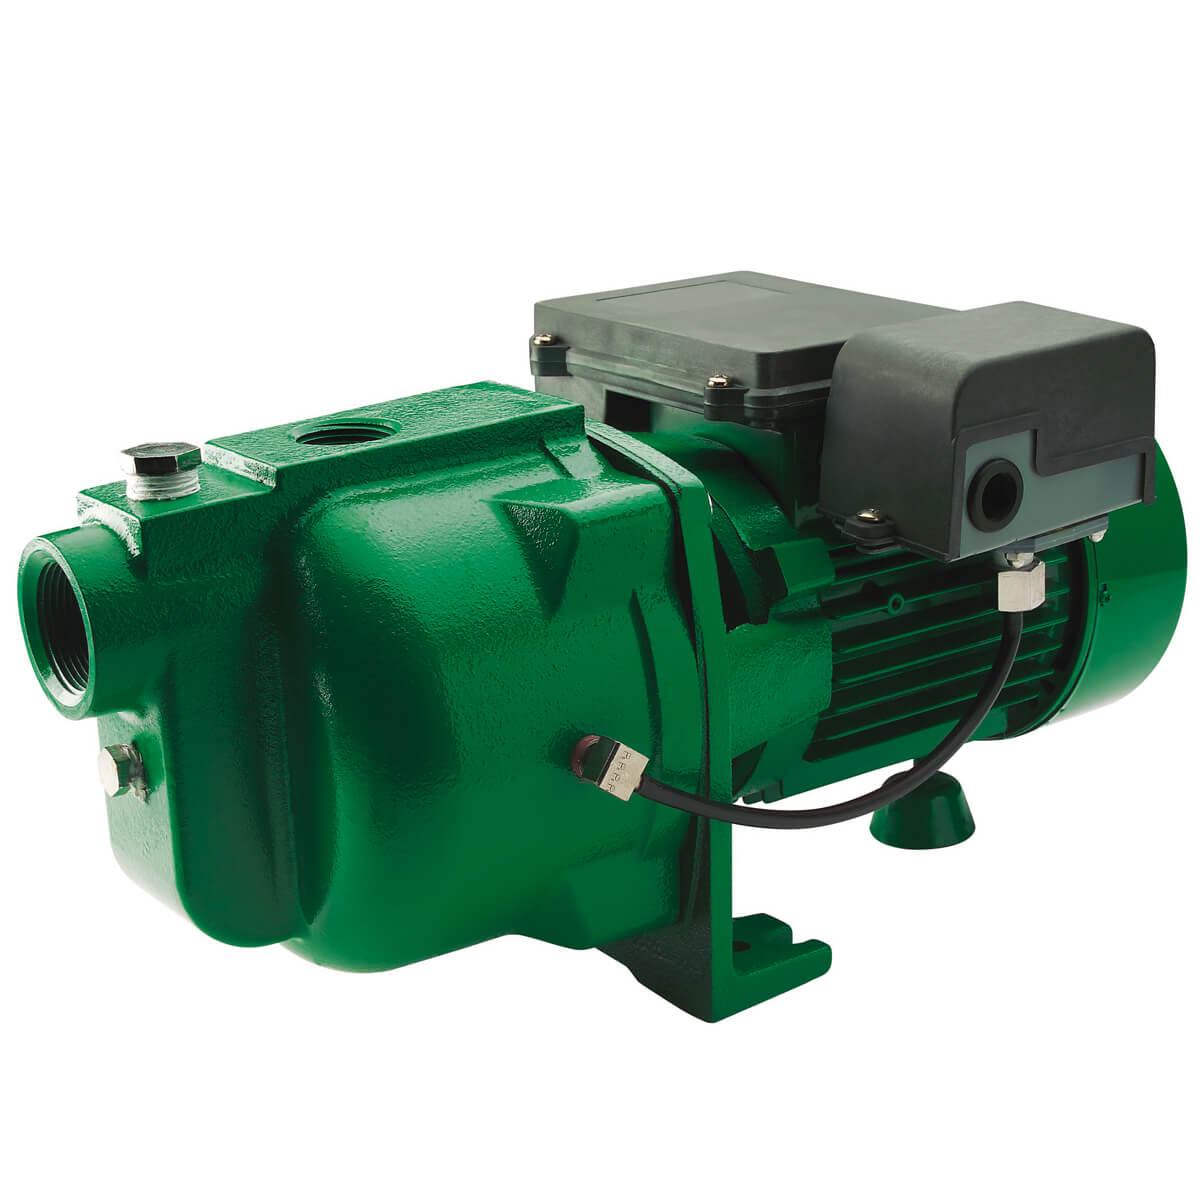 Myers 1/2 hp Shallow Well Jet Pump